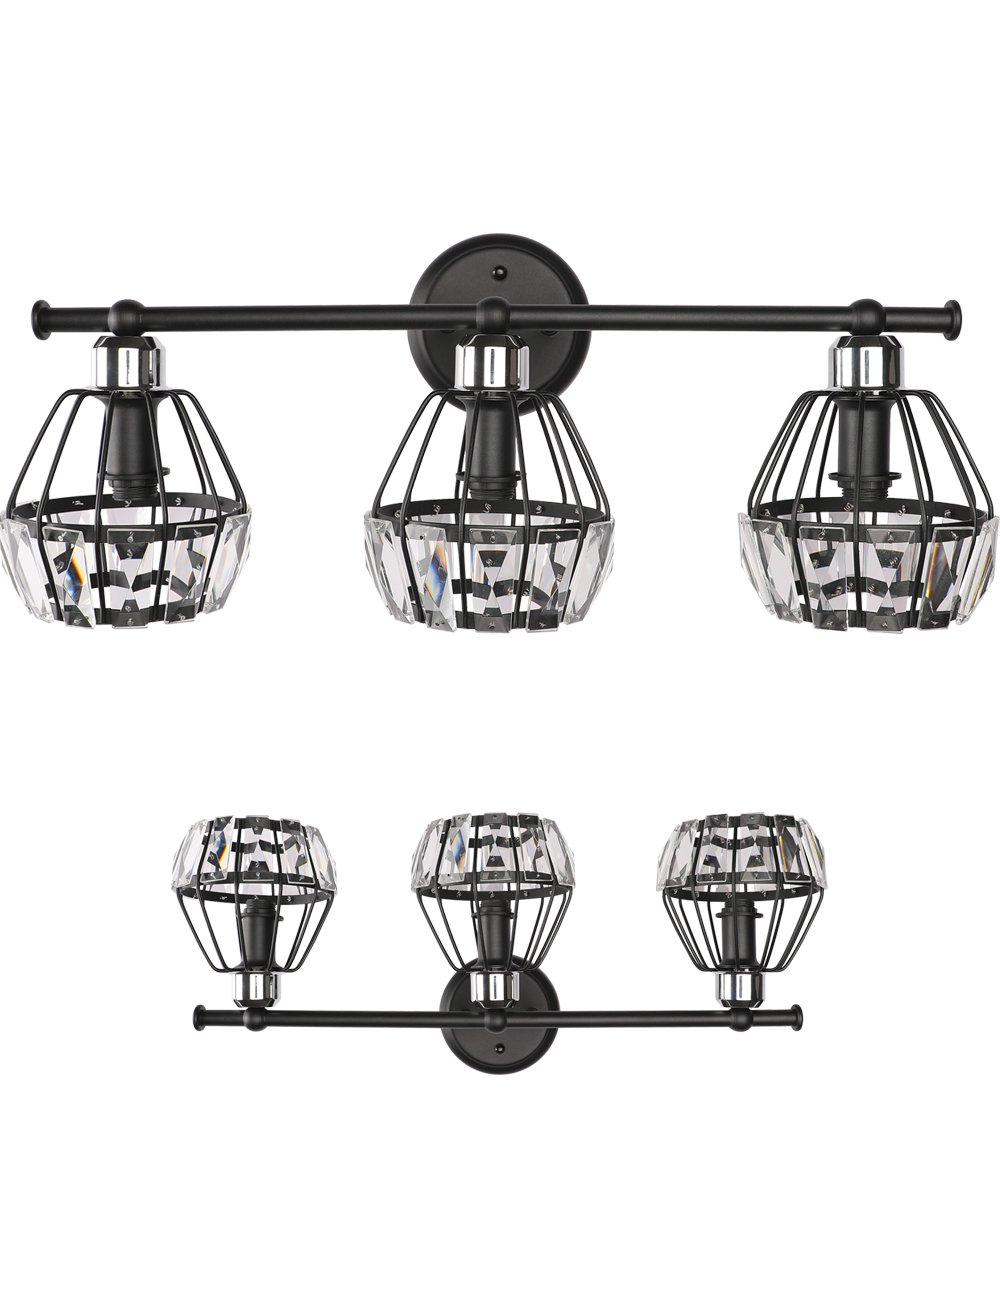 """SOLFART 3 Head Vintage Classical Crystal Vanity Lights Modern Bathroom Light Fixtures Over Mirror - 1.VINTAGE REFINED DESIGN: 5 Years Limited Warranty. Crystal brings more brilliance to your life, simple and luxurious design. 2.MEASUREMENTS: Length 23.6"""" x W9.4"""" x Height 8.1"""" ( L600*H210 mm ) 3.HIGH QUALITY MATERIAL: Class A K9 Sparkle Clear Crystal with Thickening Black Power Coat Finishing. Without Any Welding Defects. - bathroom-lights, bathroom-fixtures-hardware, bathroom - 61 irAoDBjL -"""